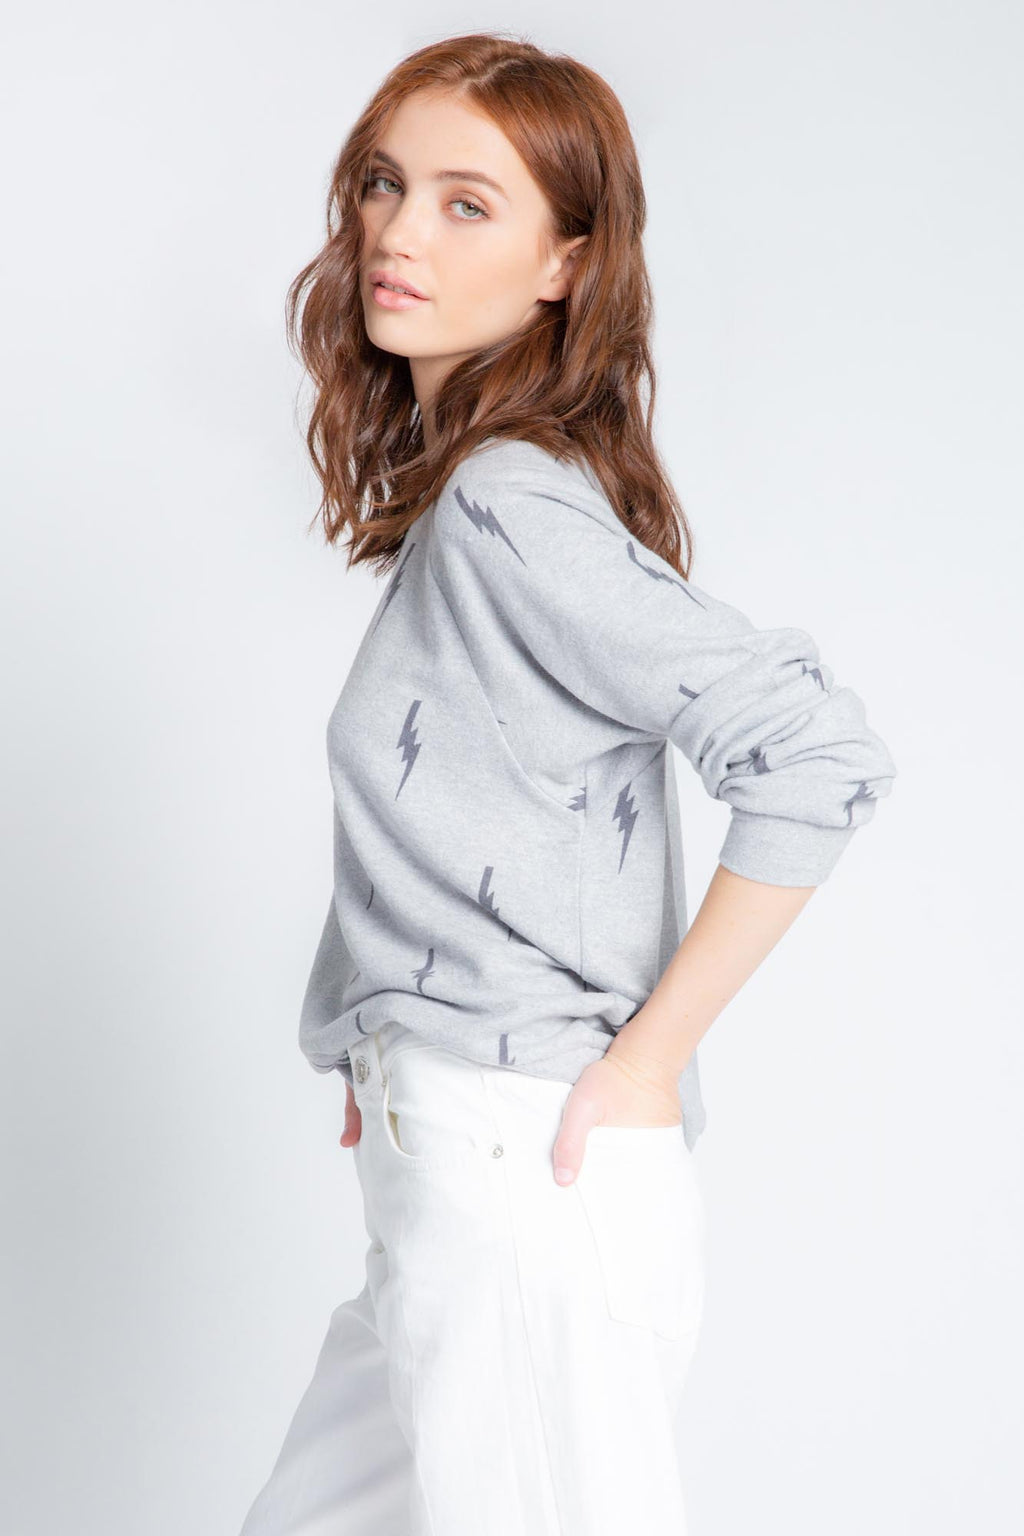 Stormy Monday Lightning Bolt L/S | Heather Grey